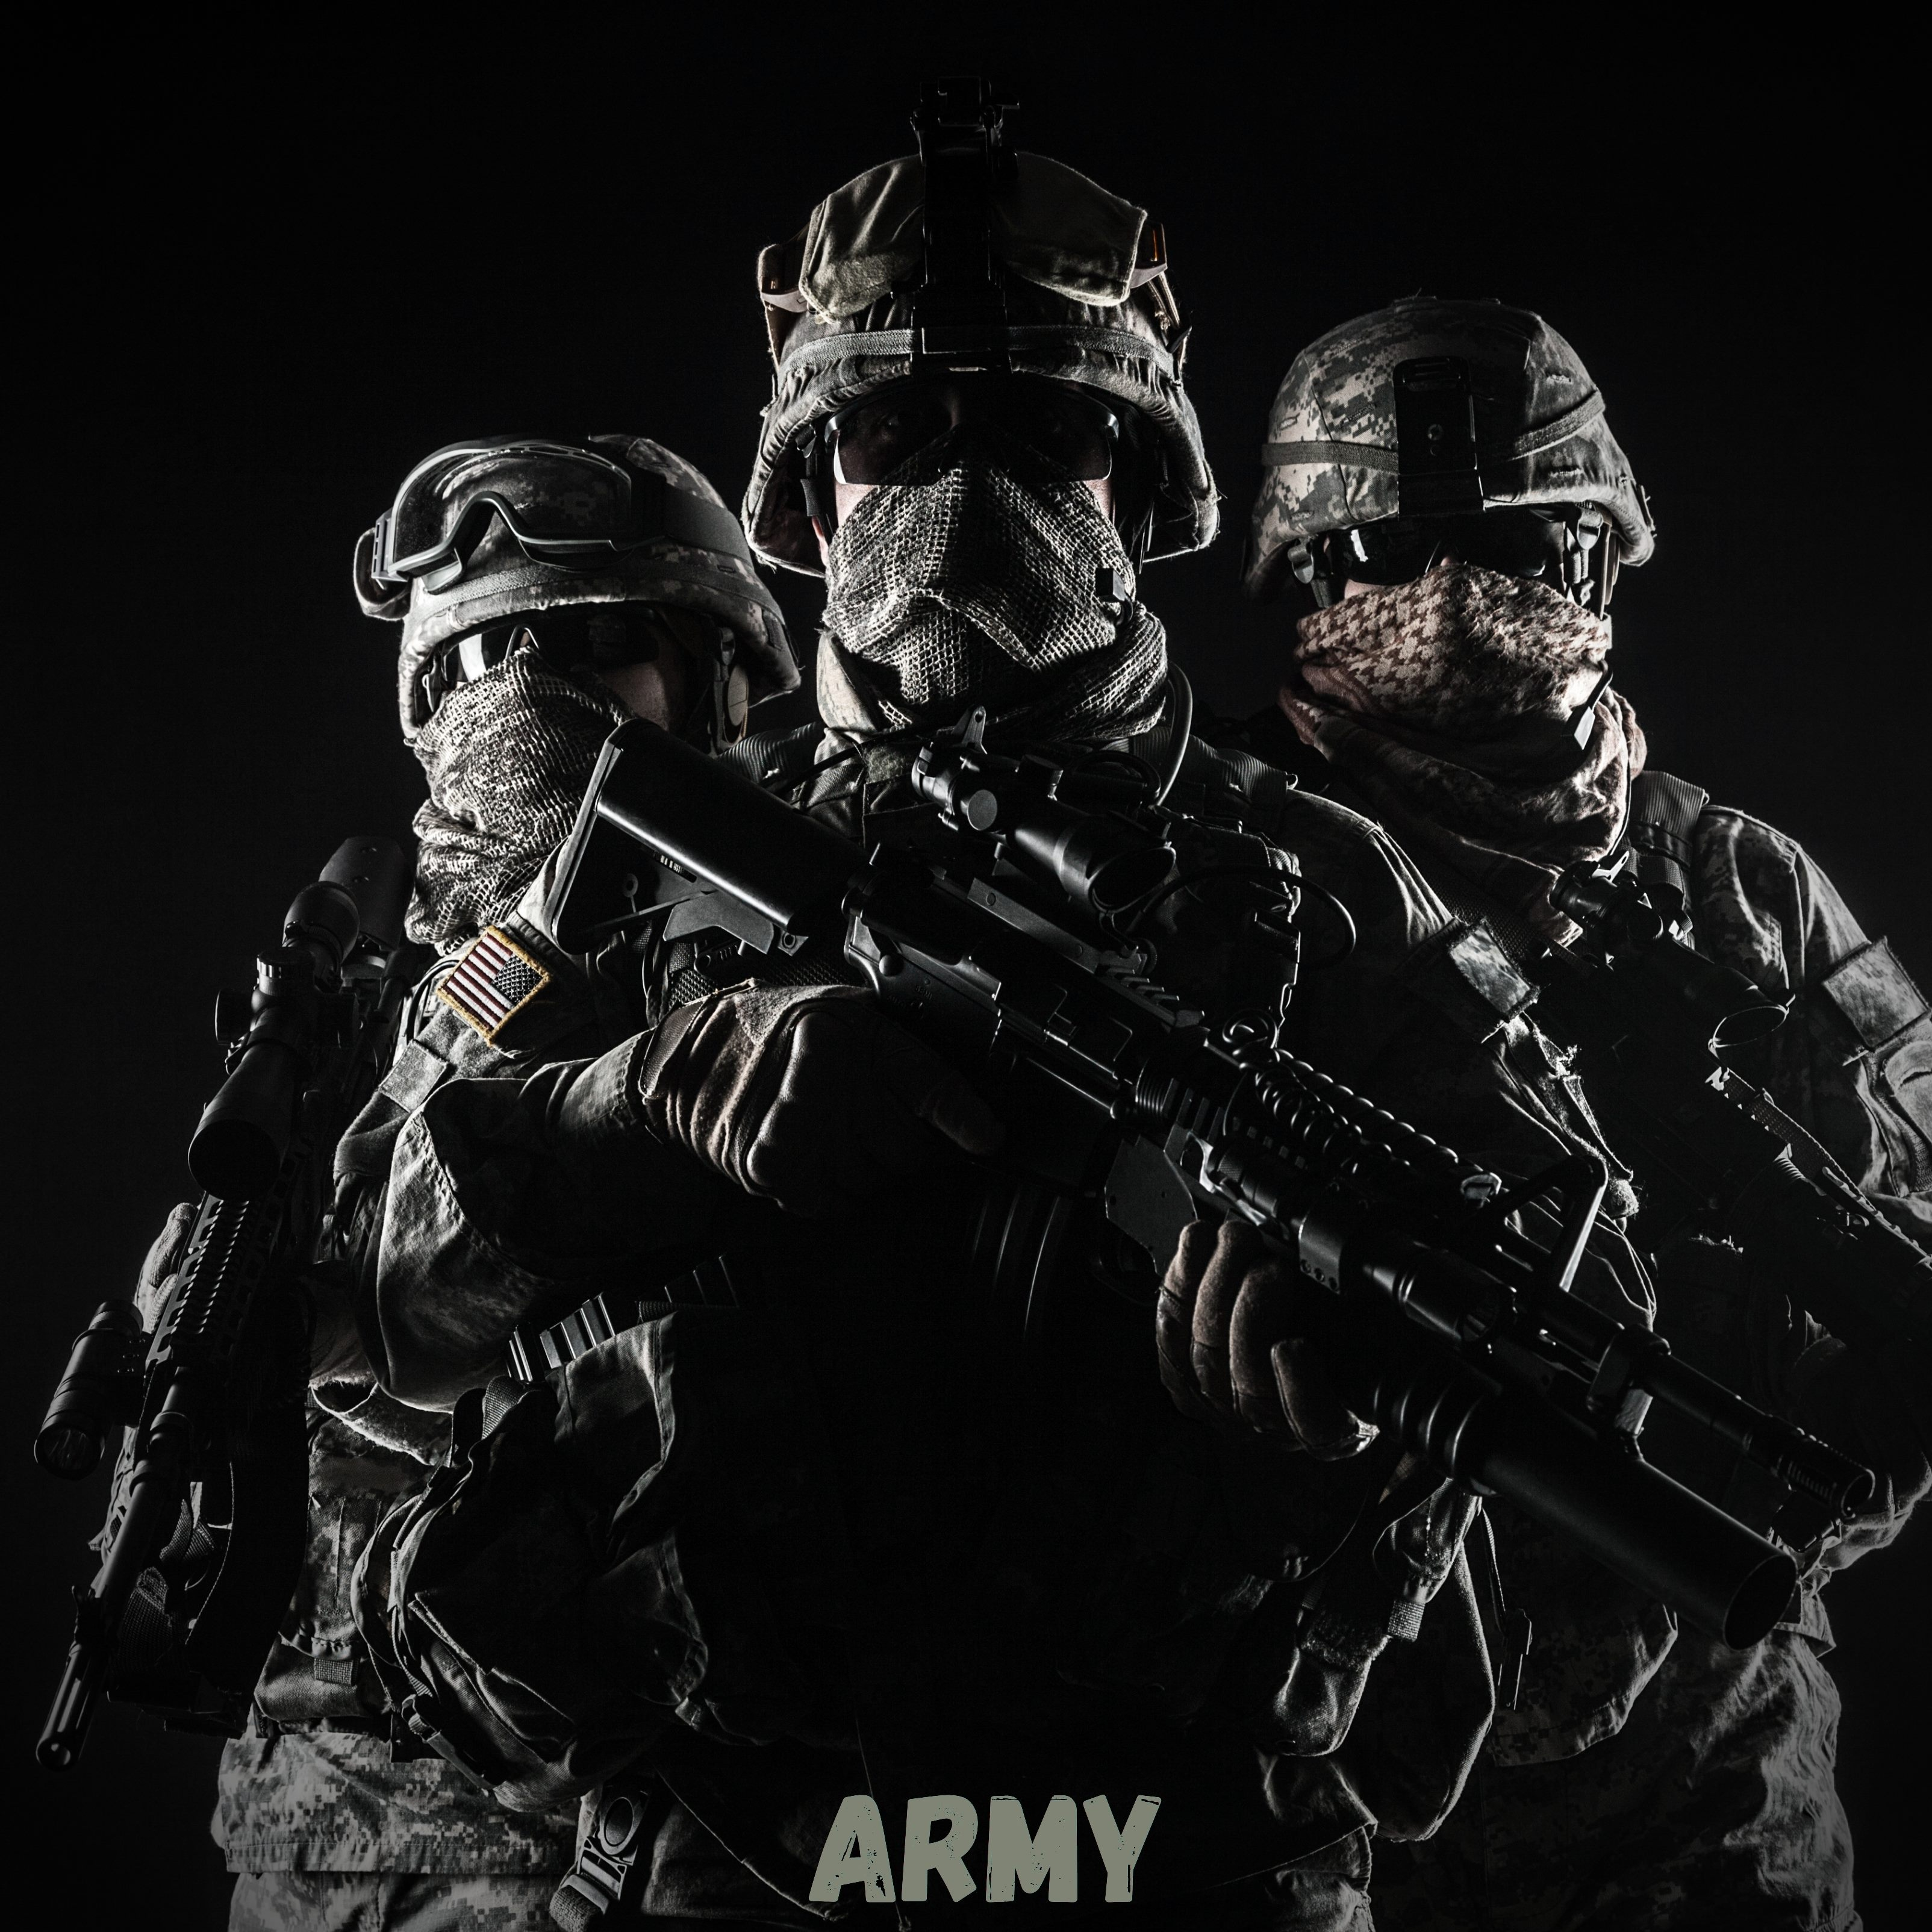 iPad Wallpapers Army Soldiers iPad Wallpaper 3208x3208 px